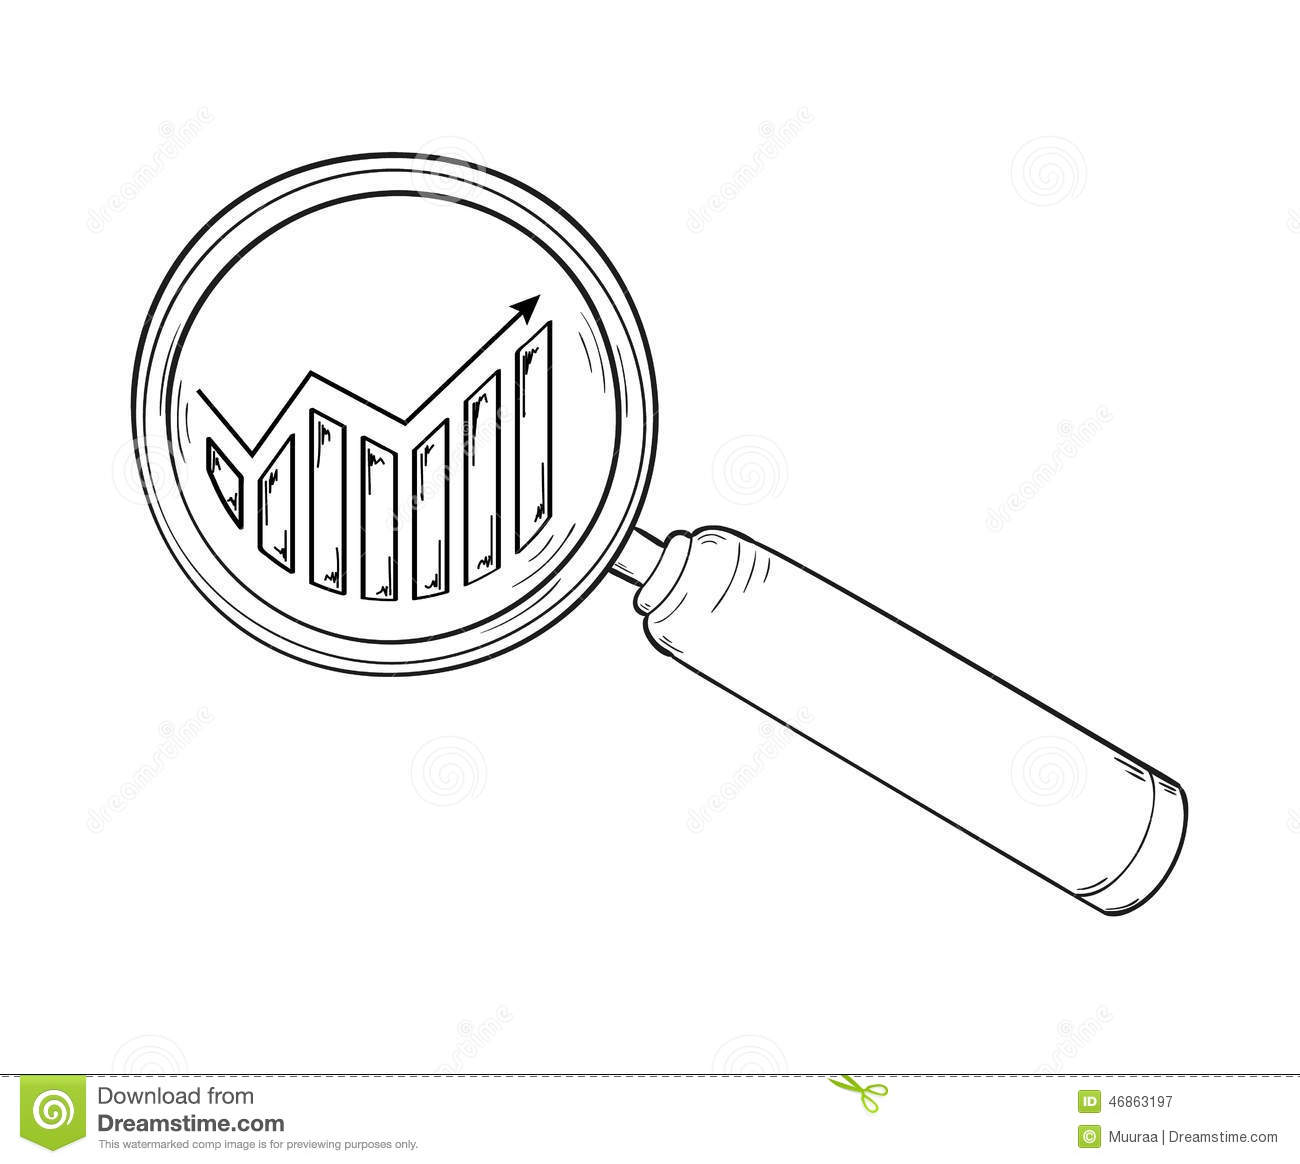 Magnifying clipart with arrow head banner royalty free Magnifying Glass And Chart With Arrow Stock Vector - Image: 46863197 banner royalty free